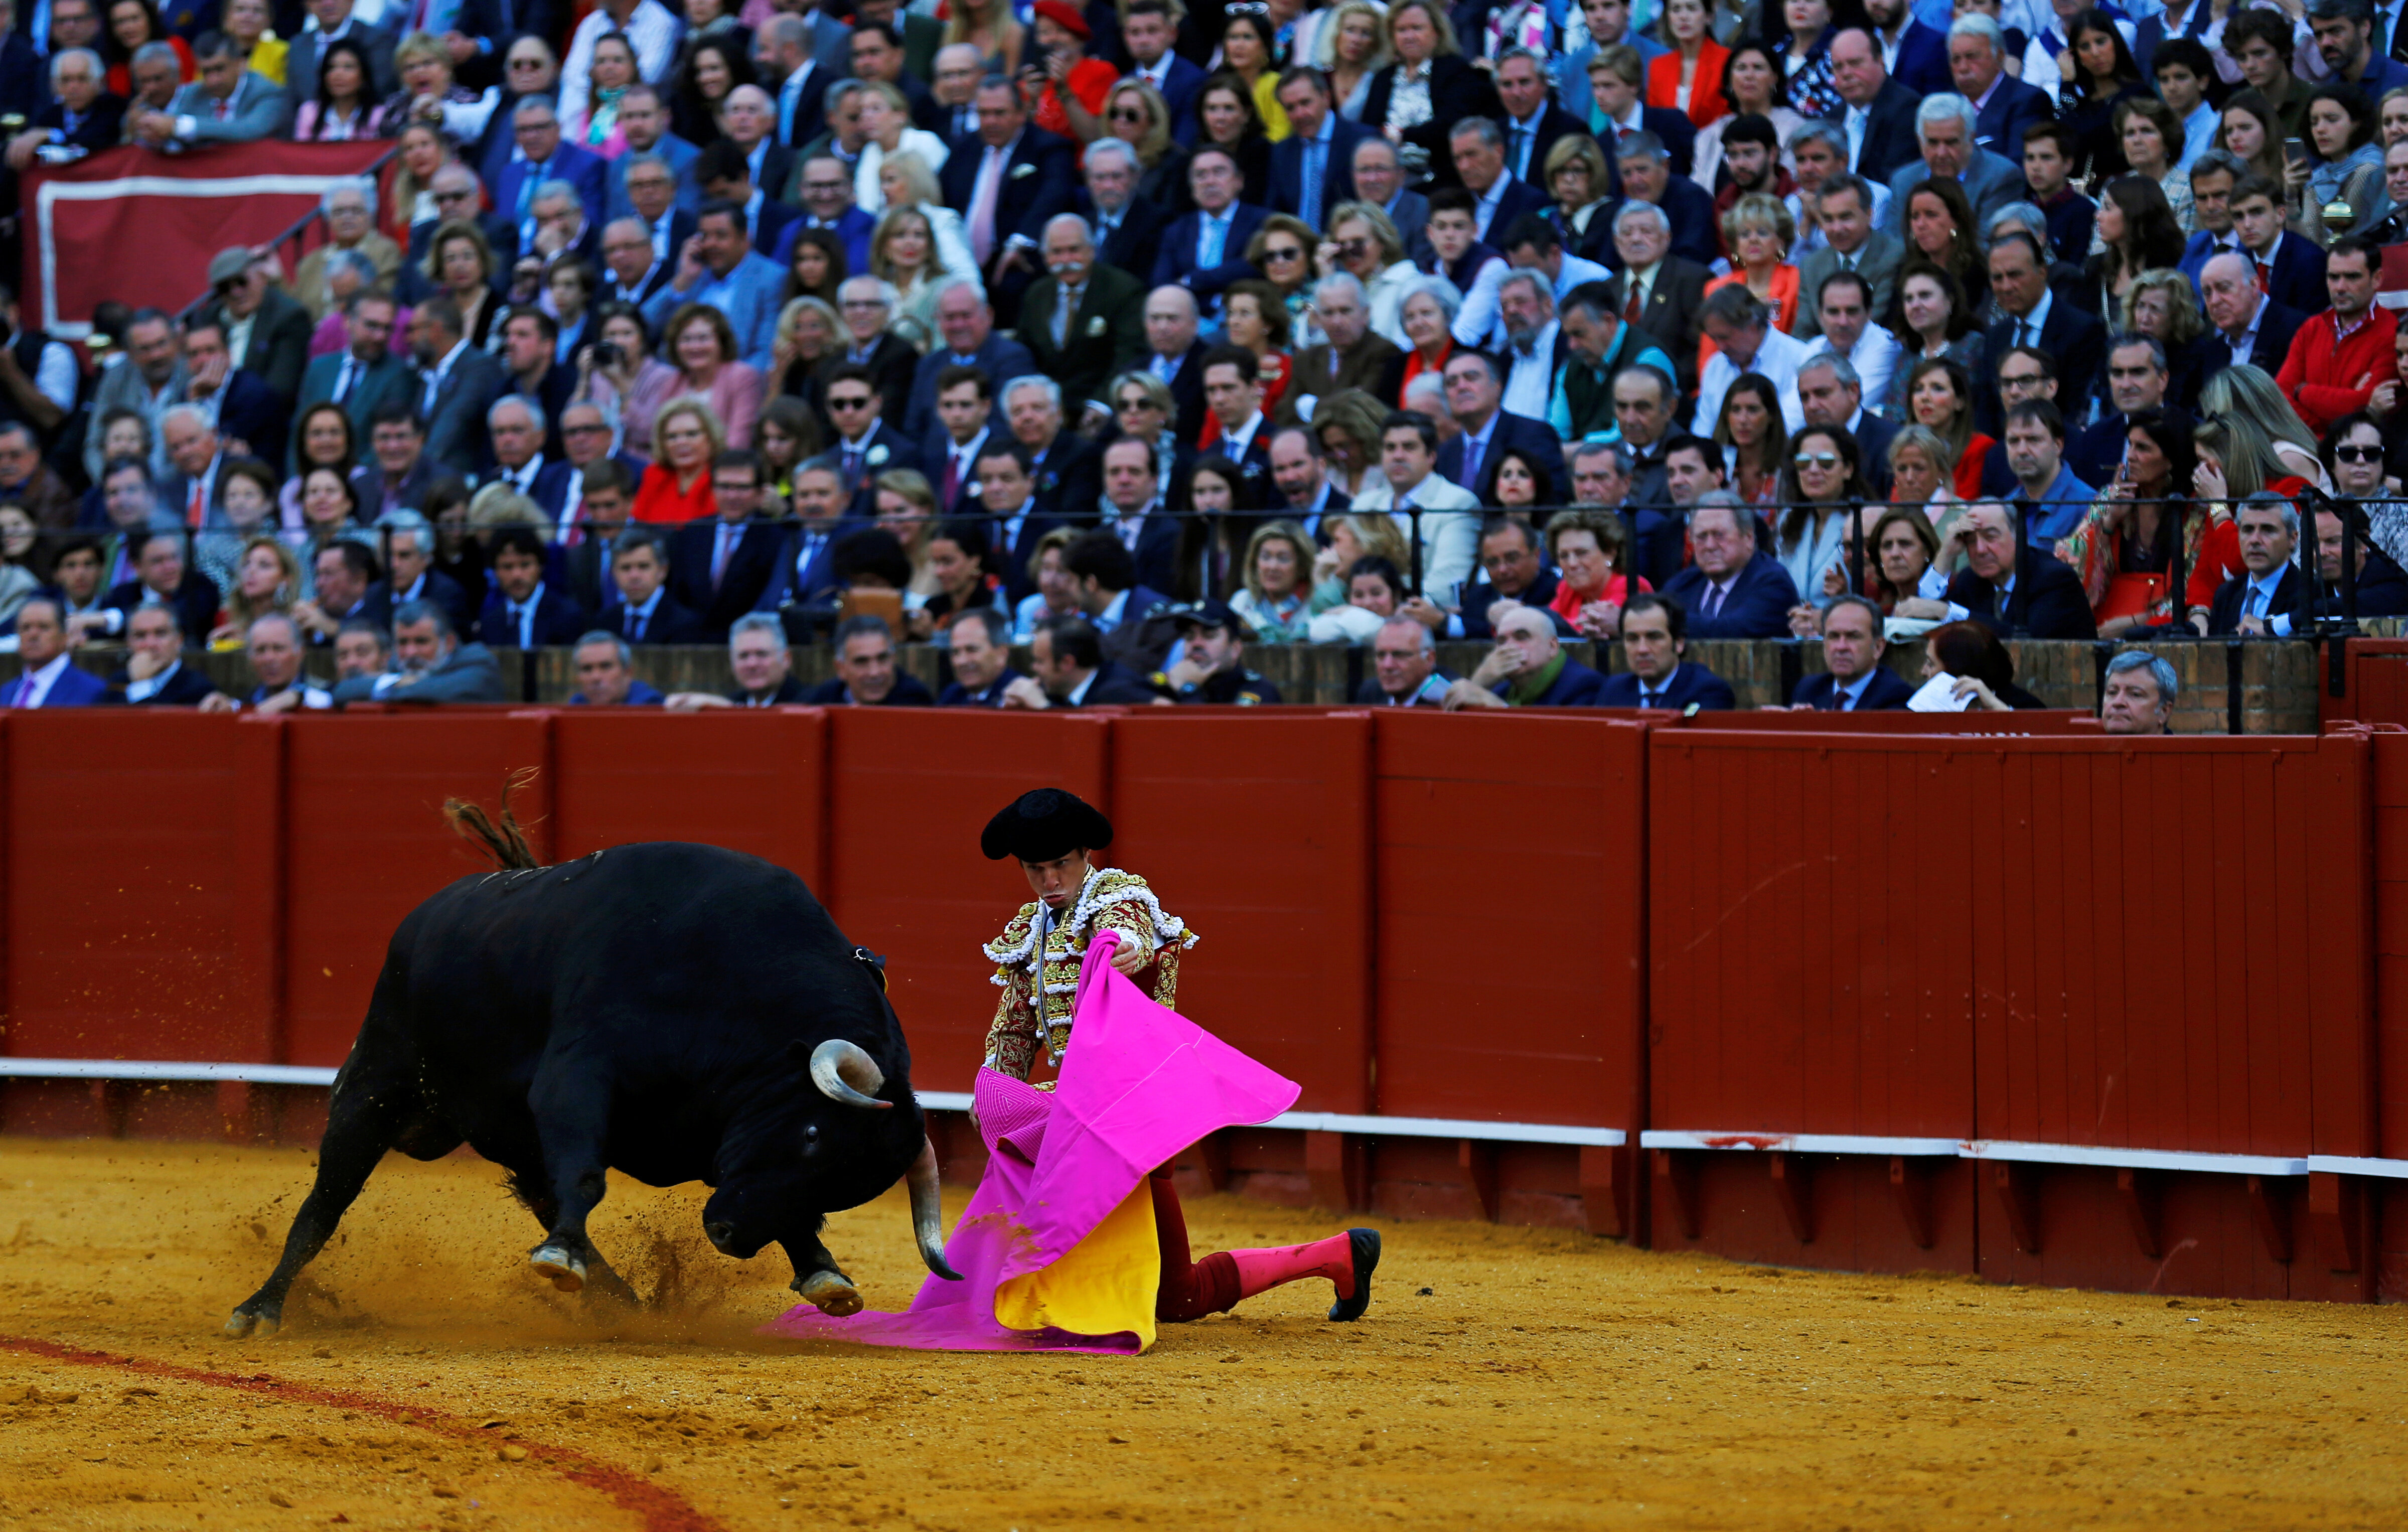 Famous matadors perform talents during a bullfight in Seville